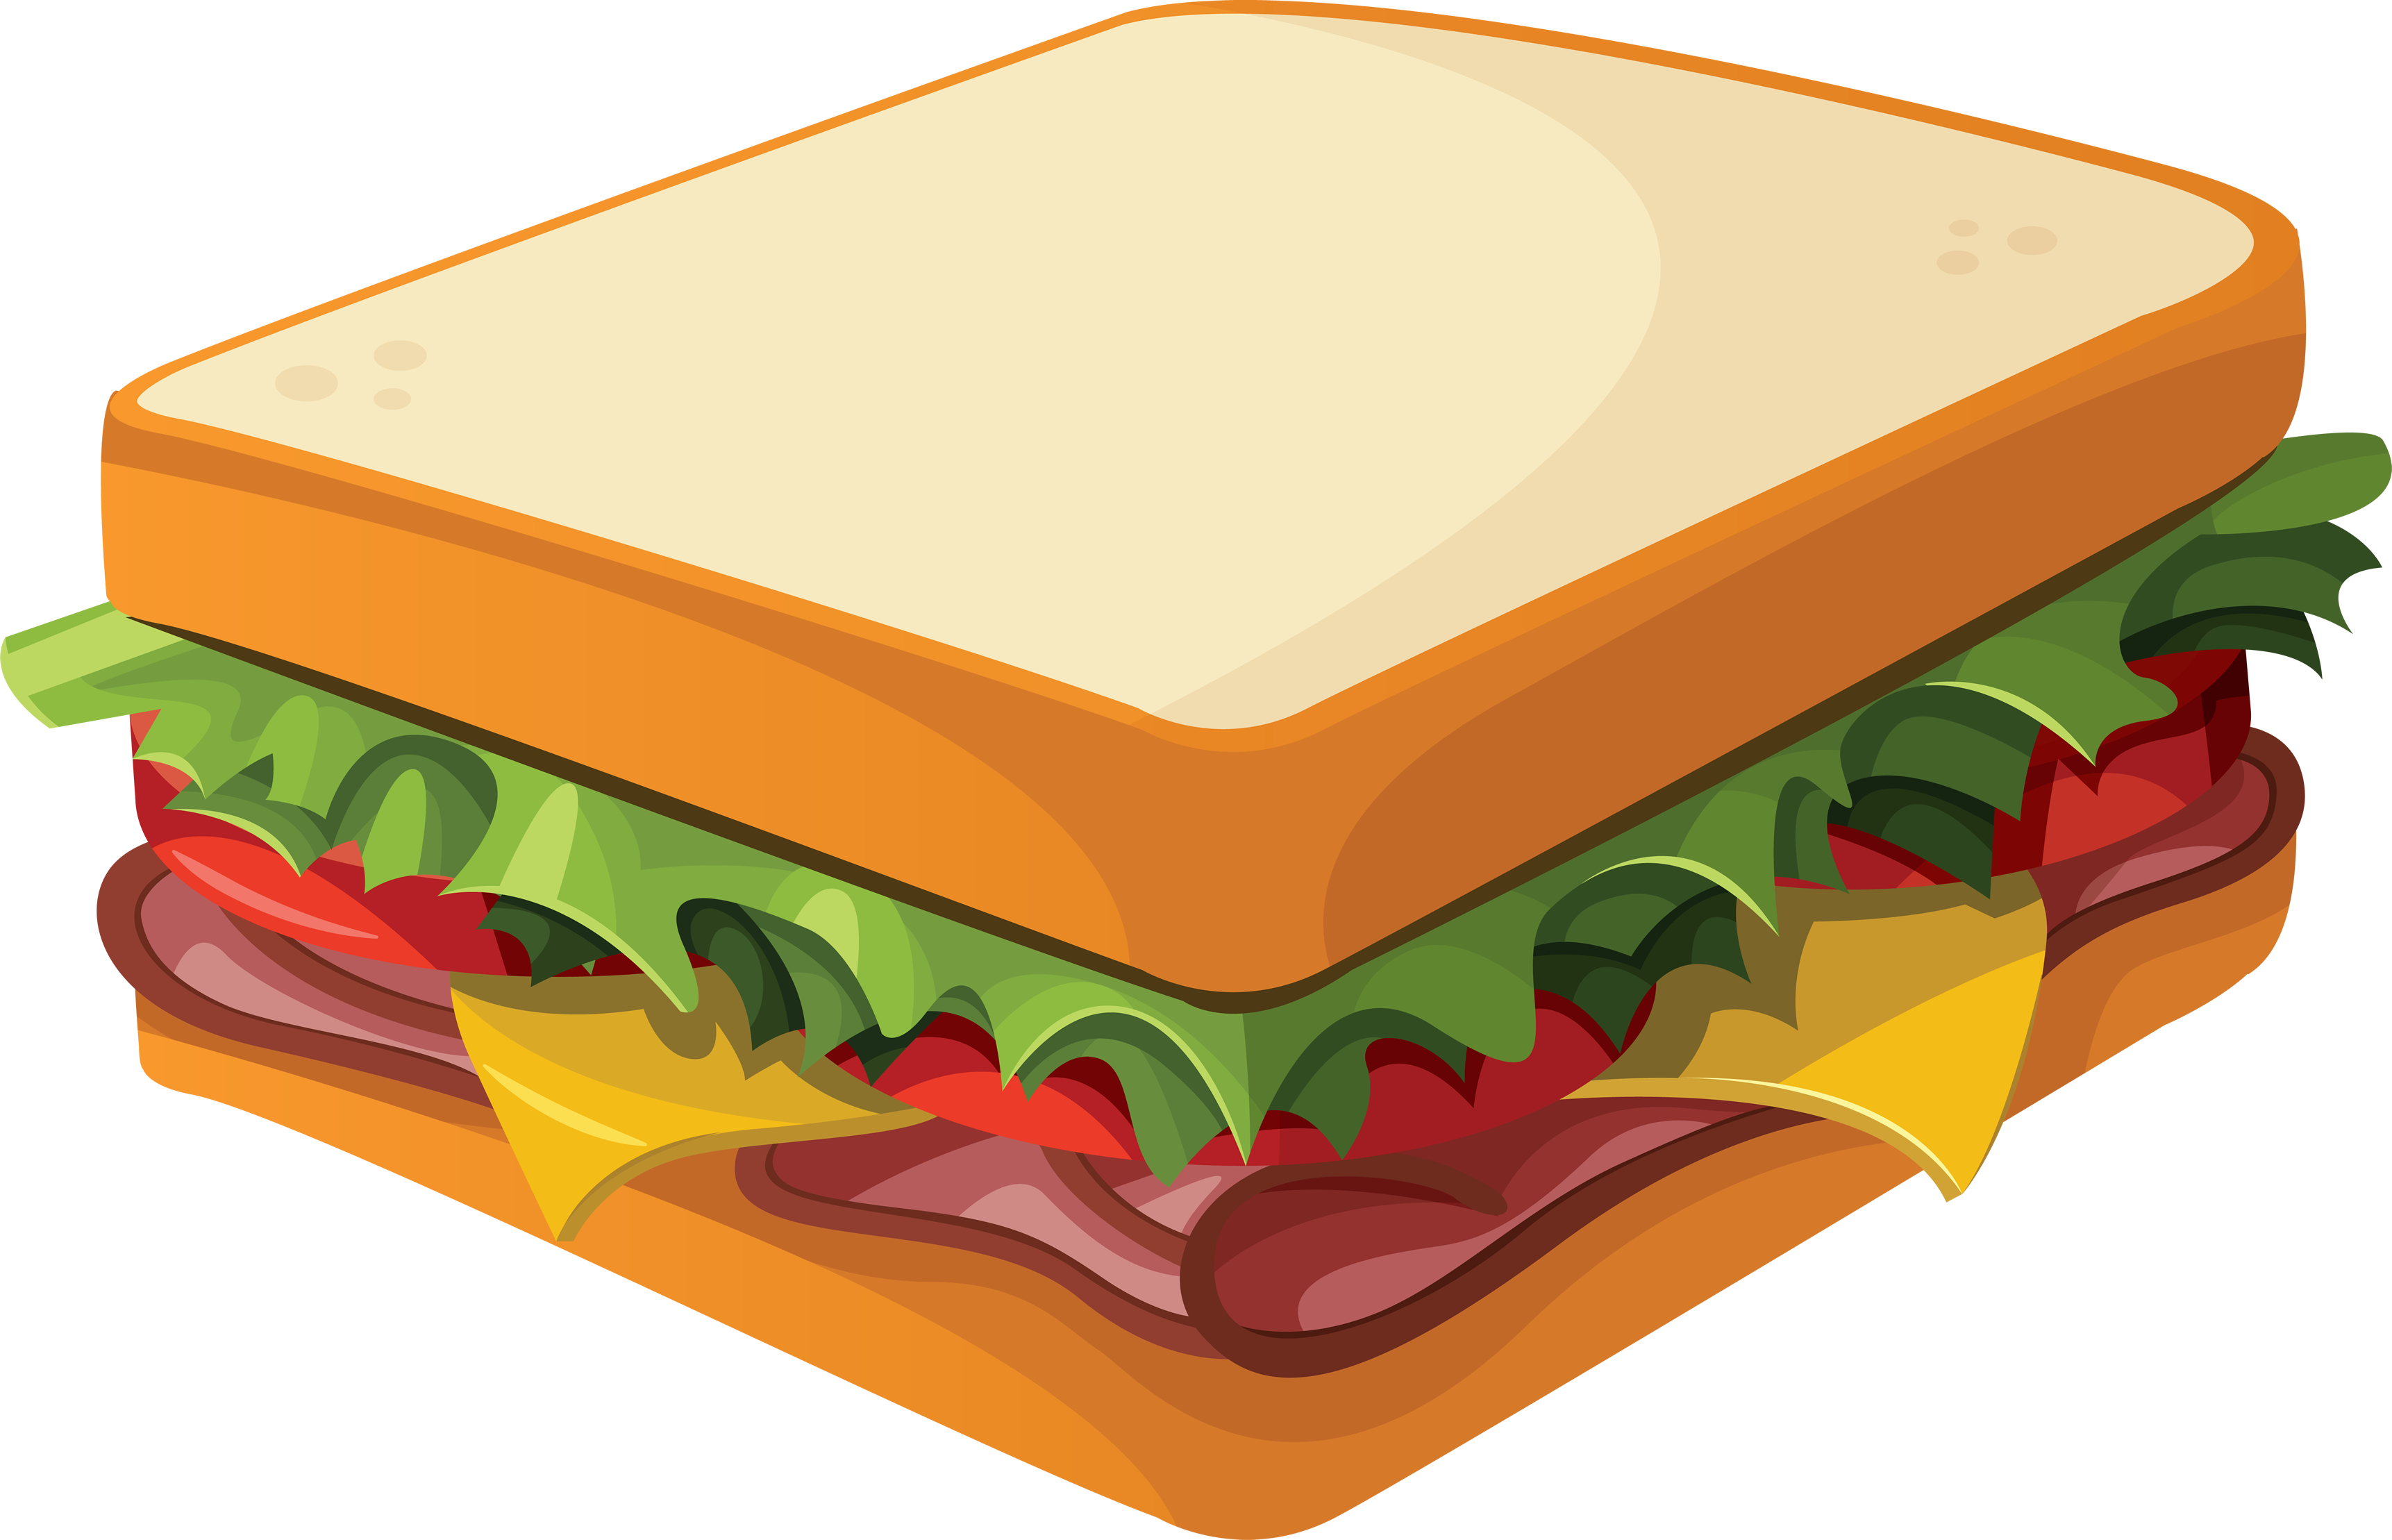 Ham clipart sandwhich. Image result for cheese